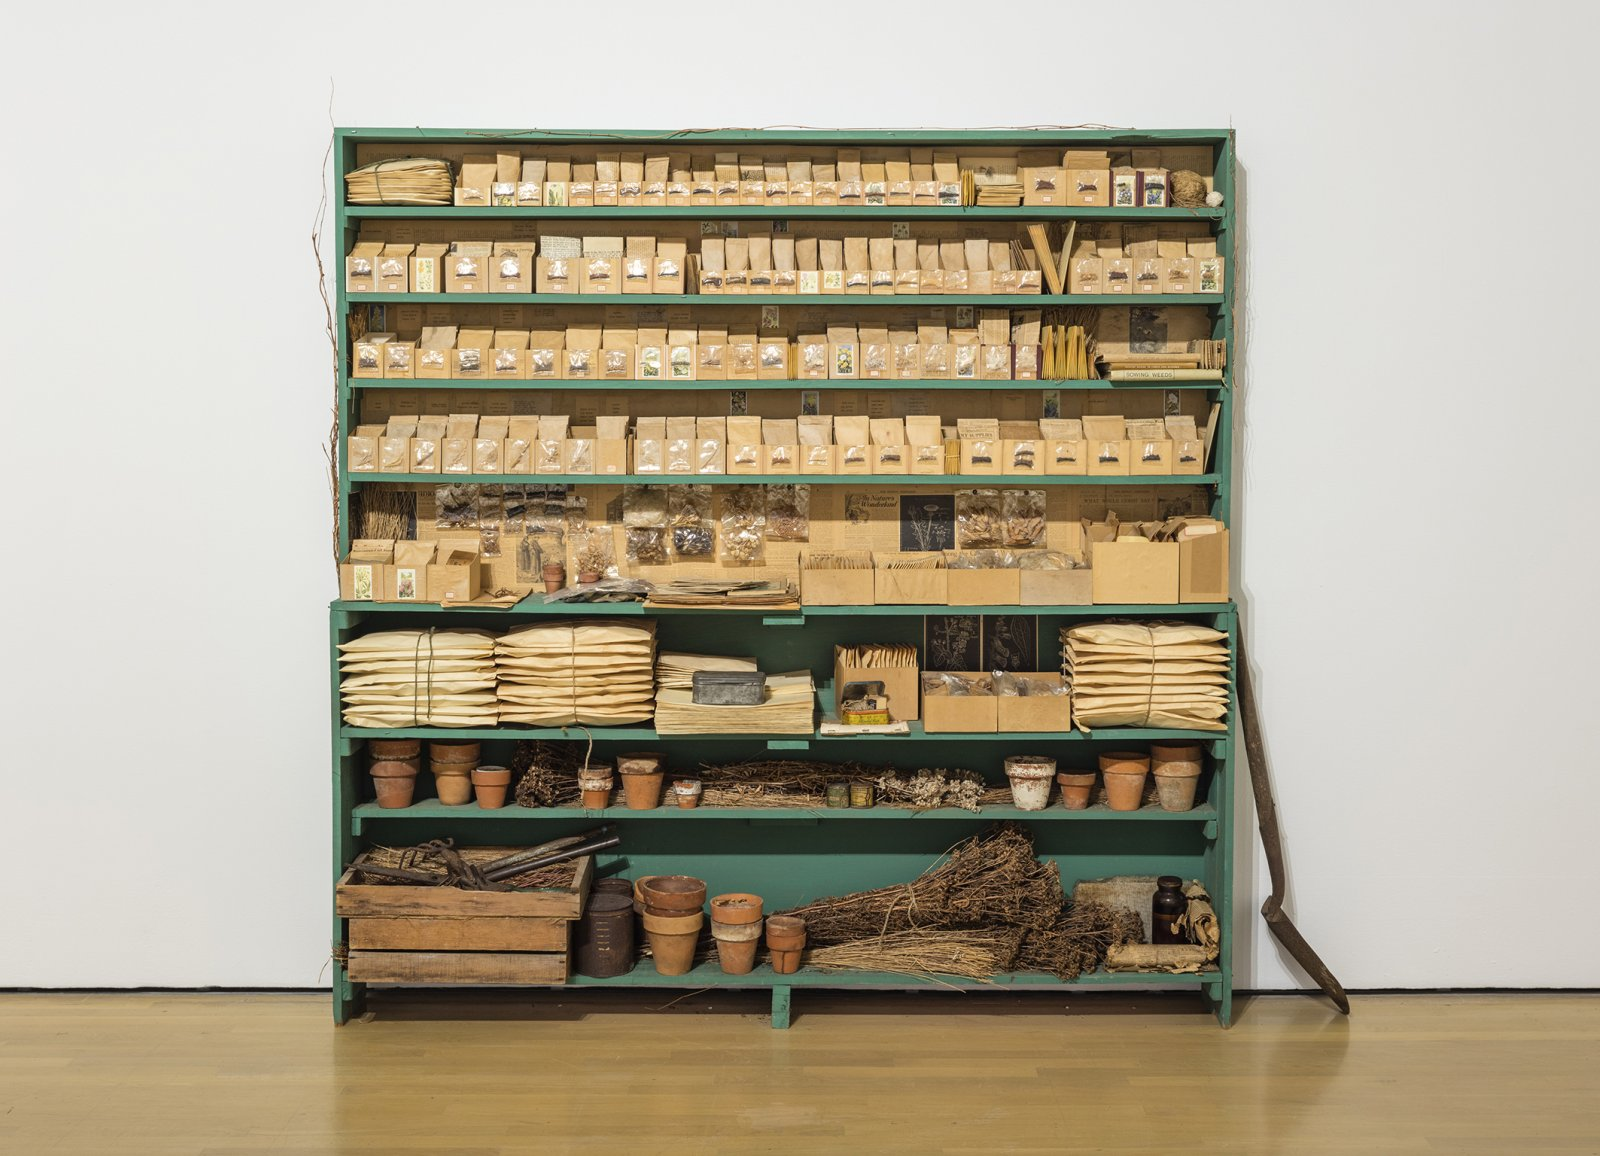 Liz Magor, Sowing Weeds in Lanes and Ditches, 1976,  wooden shelf, seeds, grass, envelopes, boxes, garden gloves, clay pots, 77 x 77 x 11 in. (196 x 196 x 27 cm) by Liz Magor